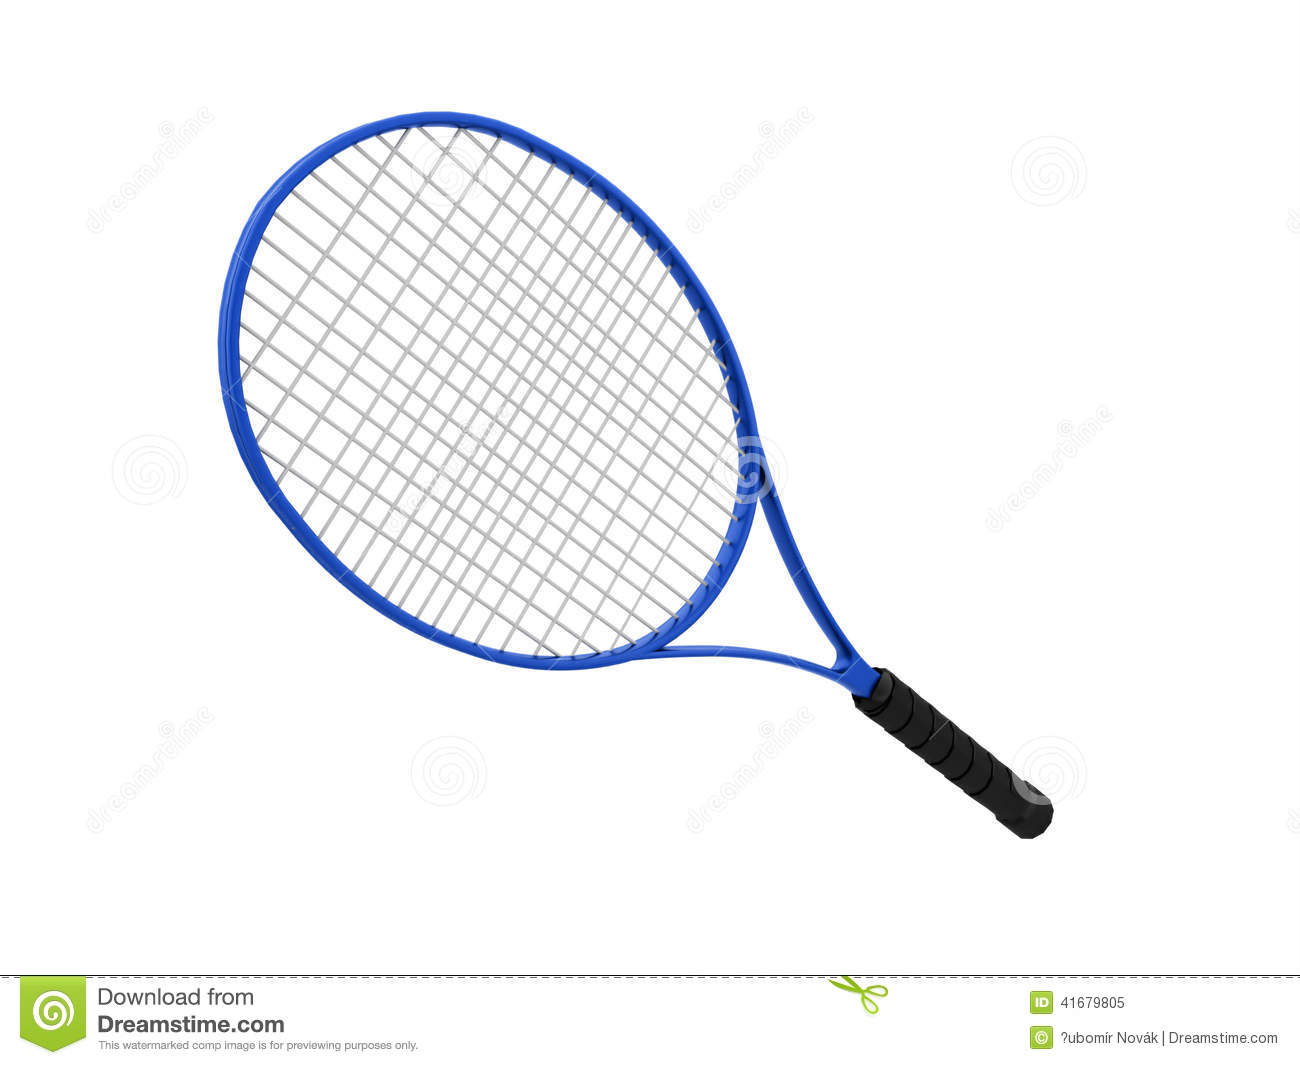 d8dbc88e2 Blue tennis racket isolated on white background. More similar stock  illustrations